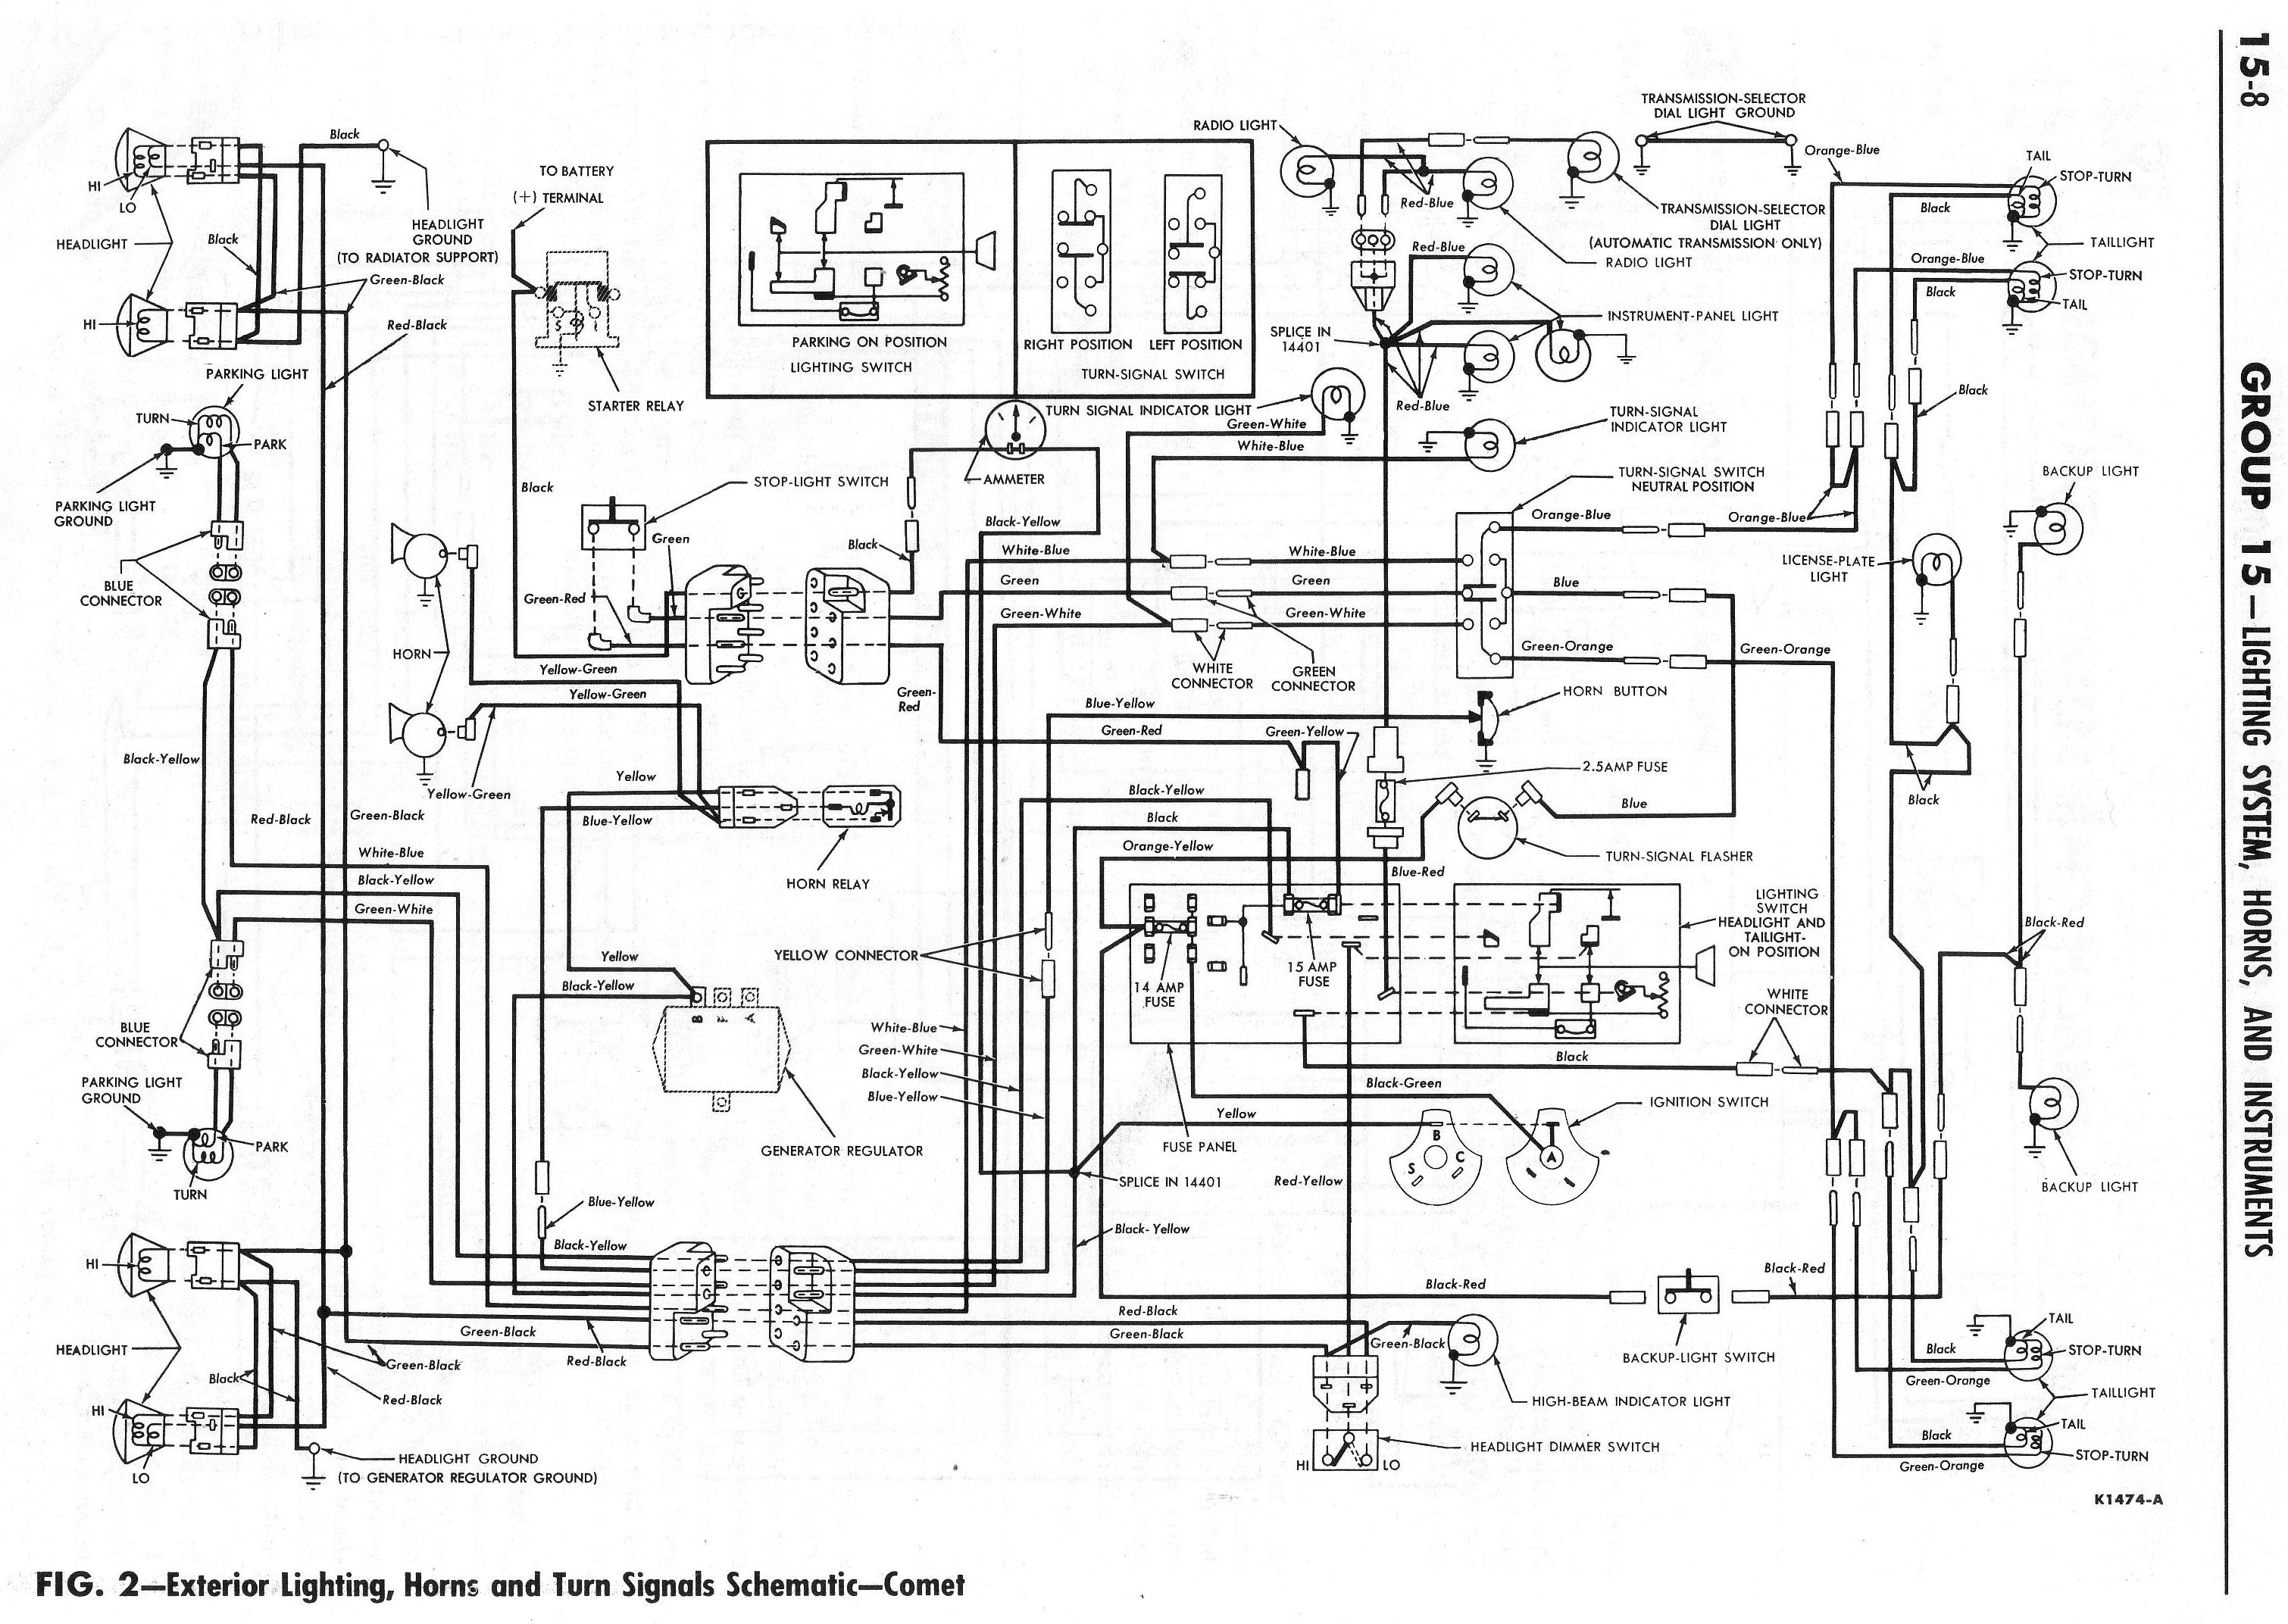 389 peterbilt wiring schematic ac 389 peterbilt ac wiring harness wiring diagram